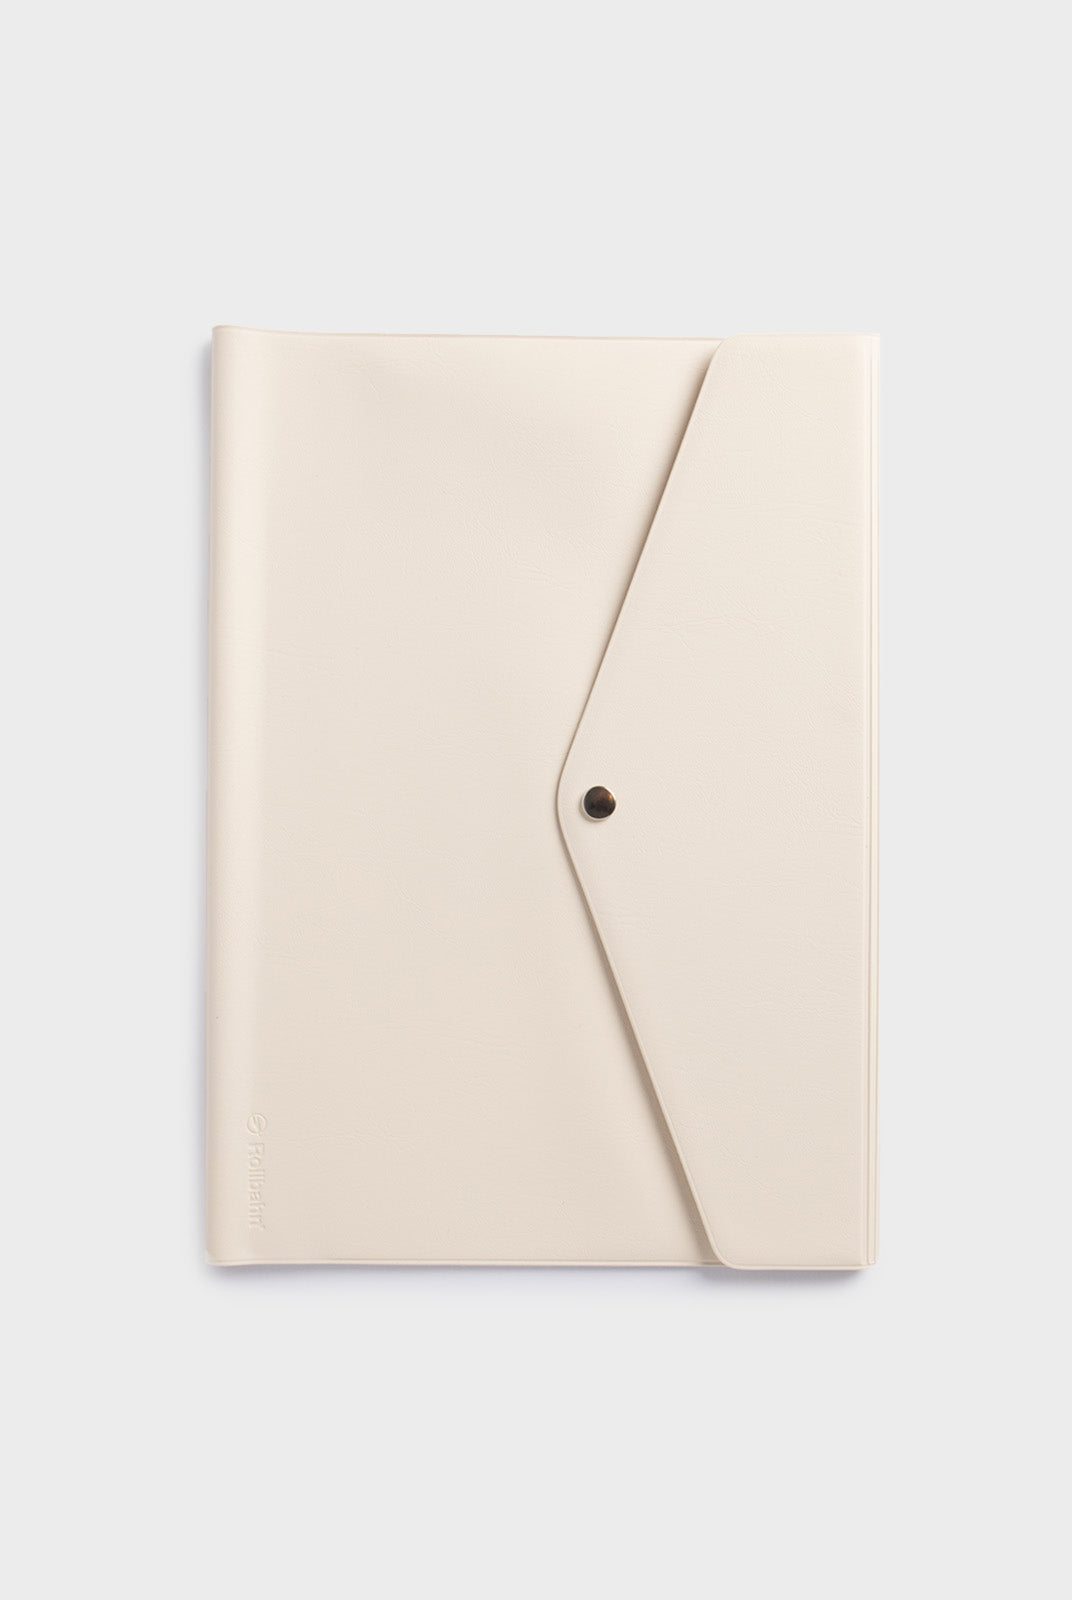 Delfonics - Rollbahn Notebook Cover with Flap - B5 - Cream